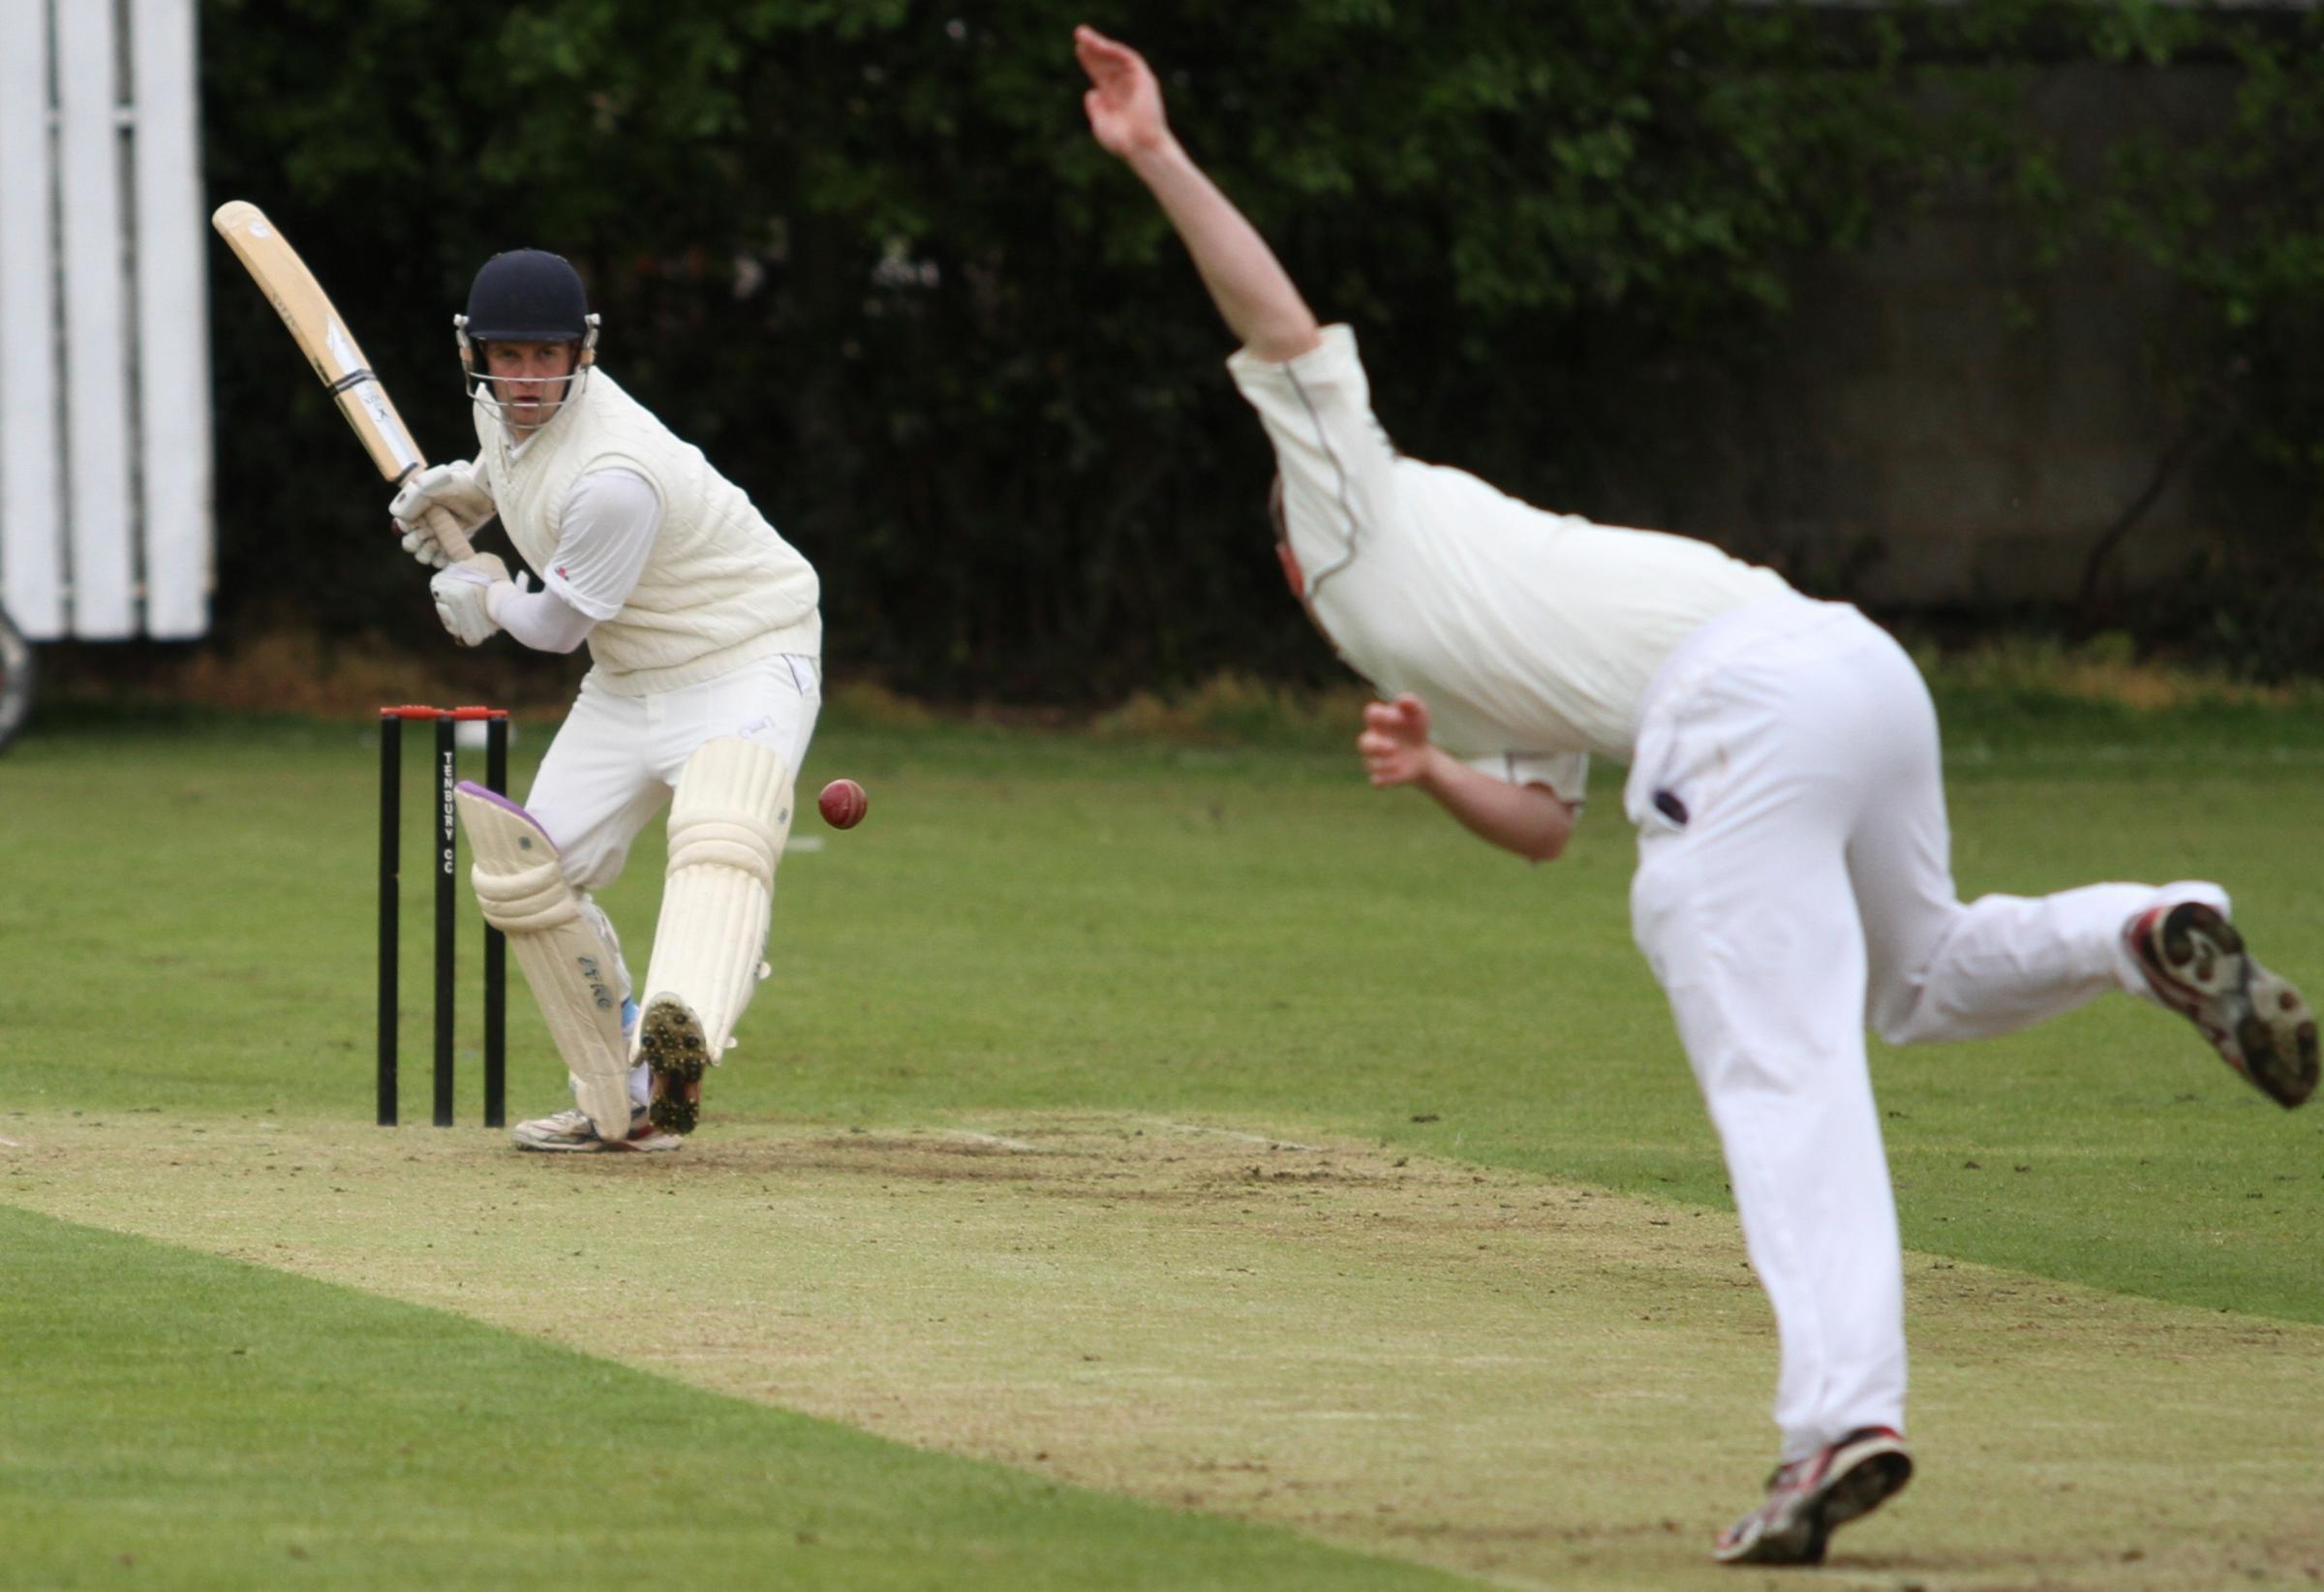 Tenbury's hunger is back, says player Rawlings